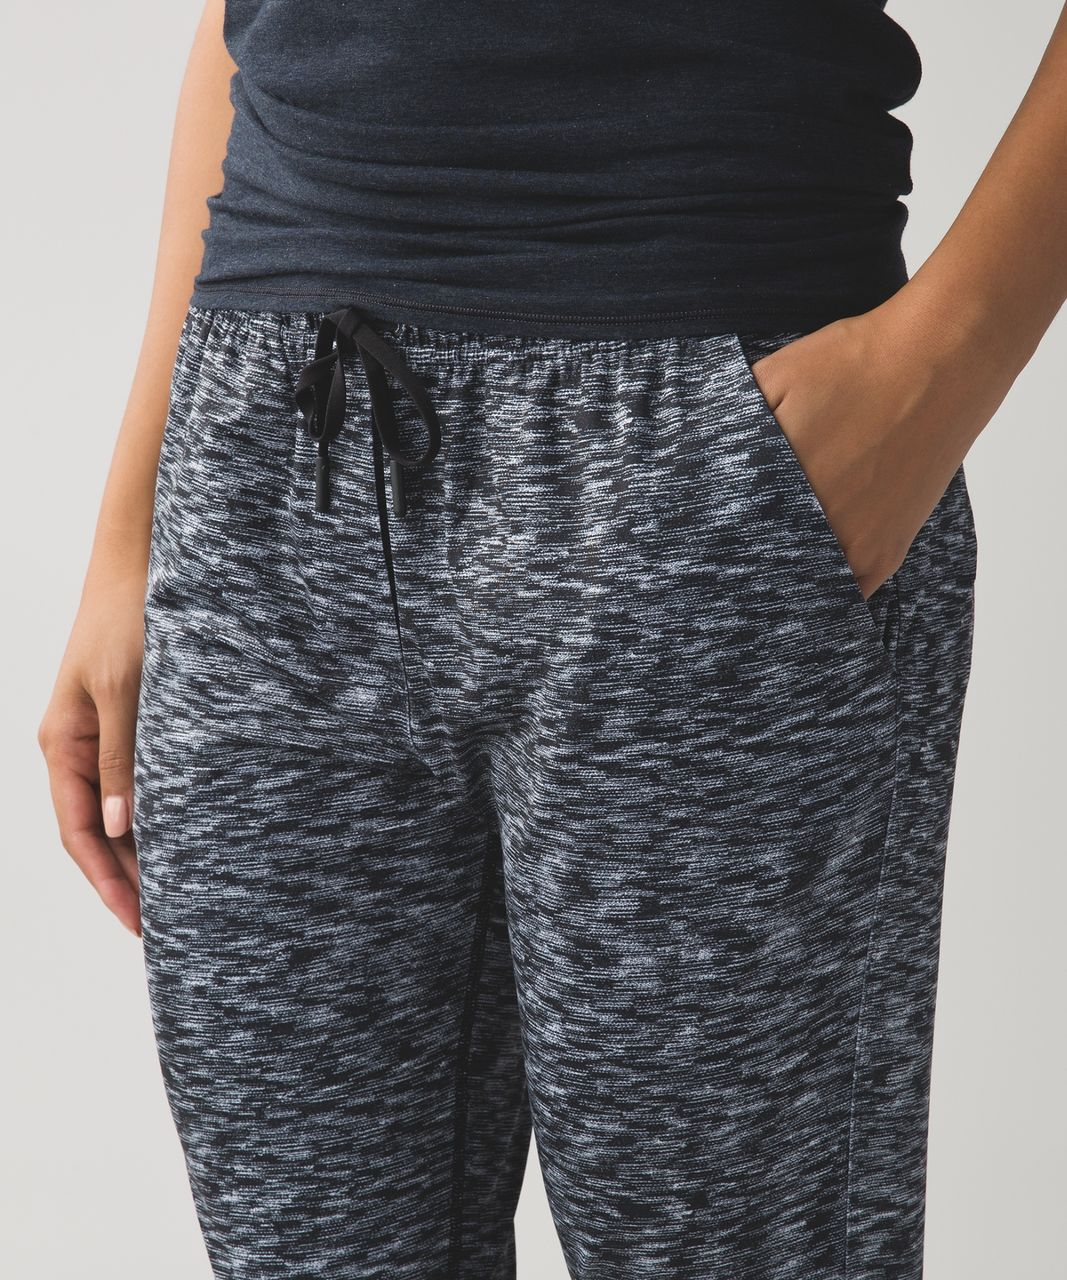 Lululemon Jet Crop (Slim) - Dramatic Static White Black